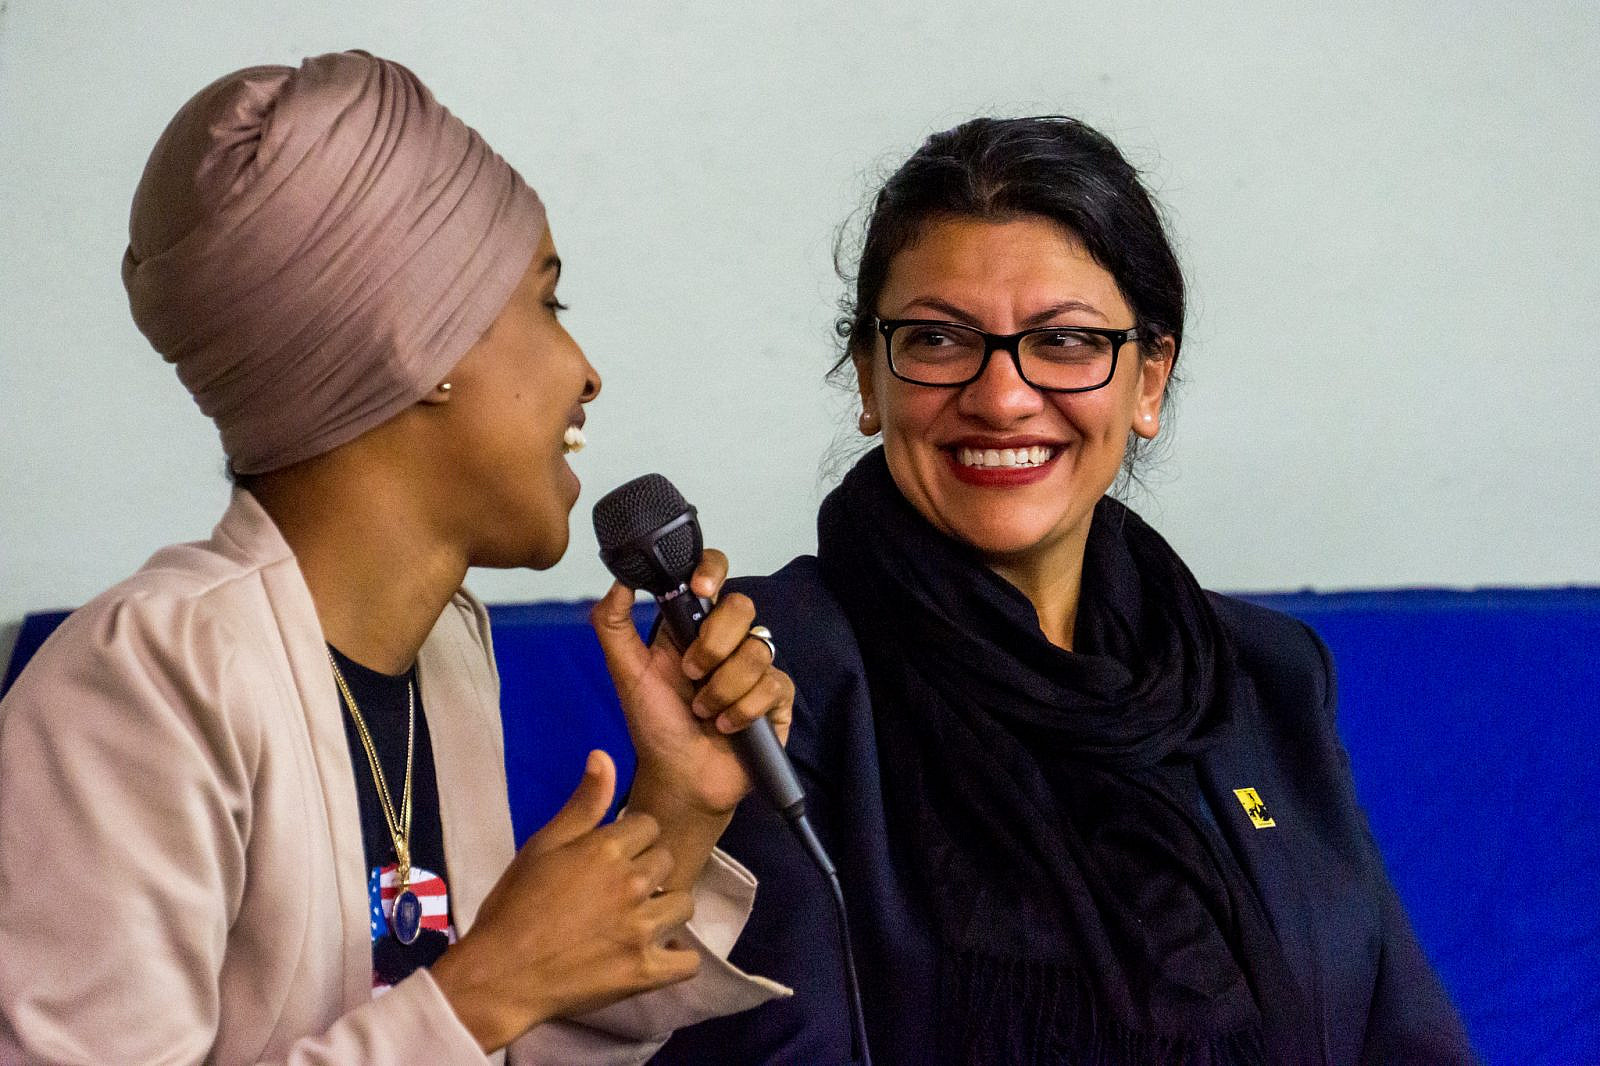 Congresswomen Ilhan Omar and Rashida Tlaib speak at an event hosted by CAIR-Minnesota in Minneapolis, August 19, 2019. (Brad Sigal/Flickr)